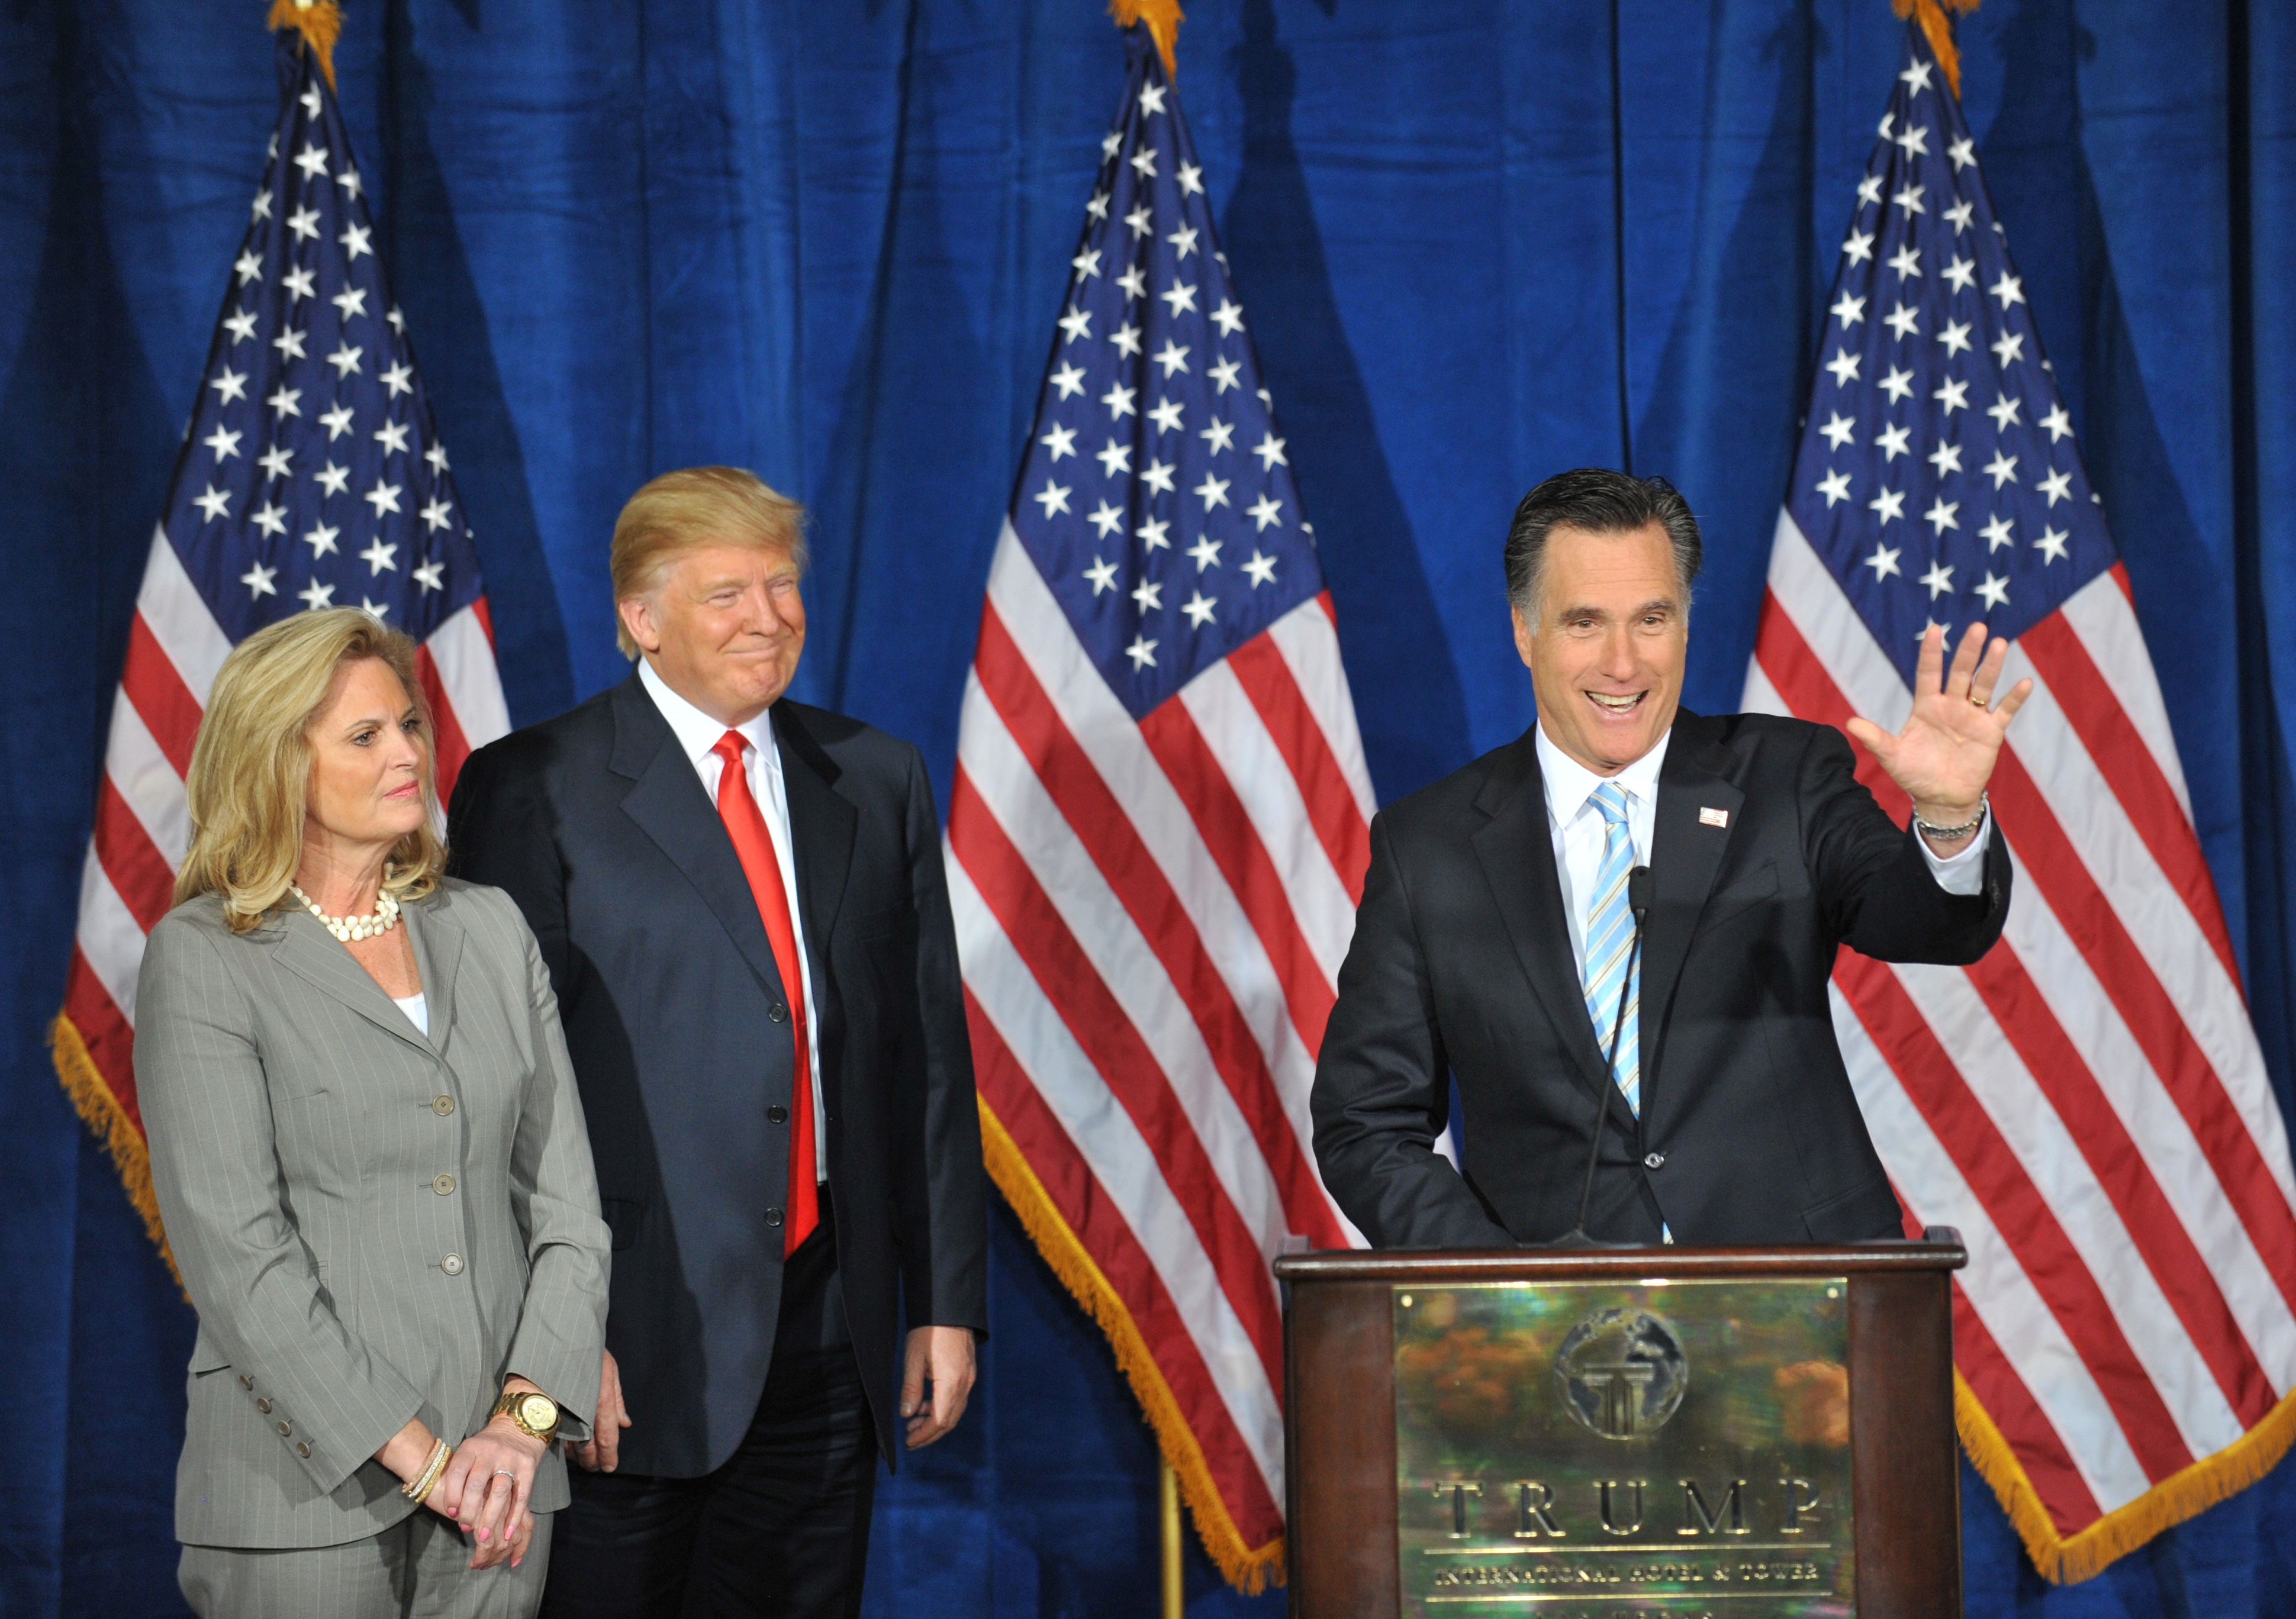 Republican presidential hopeful Mitt Romney (R), with wife Ann (L), speaks after being endorsed by Donald Trump (C) at Trump International Hotel & Tower on February 2, 2012 in Las Vegas, Nevada ahead of the February 4 Nevada caucus. AFP PHOTO/Stan HONDA